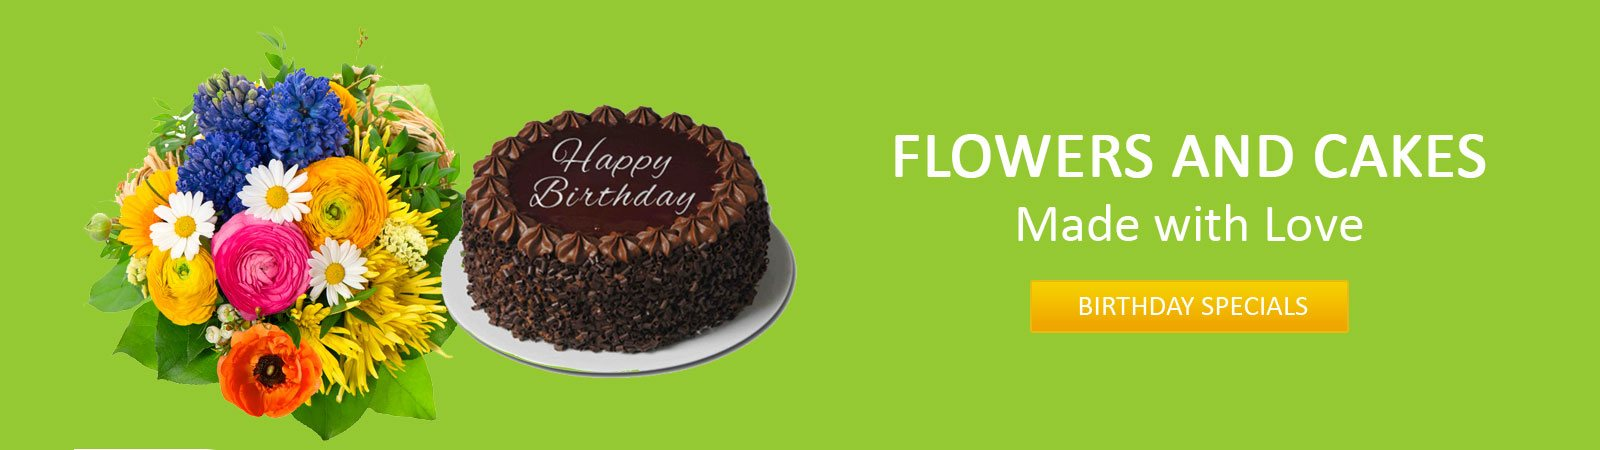 Send Flowers and Cake Online Delivery